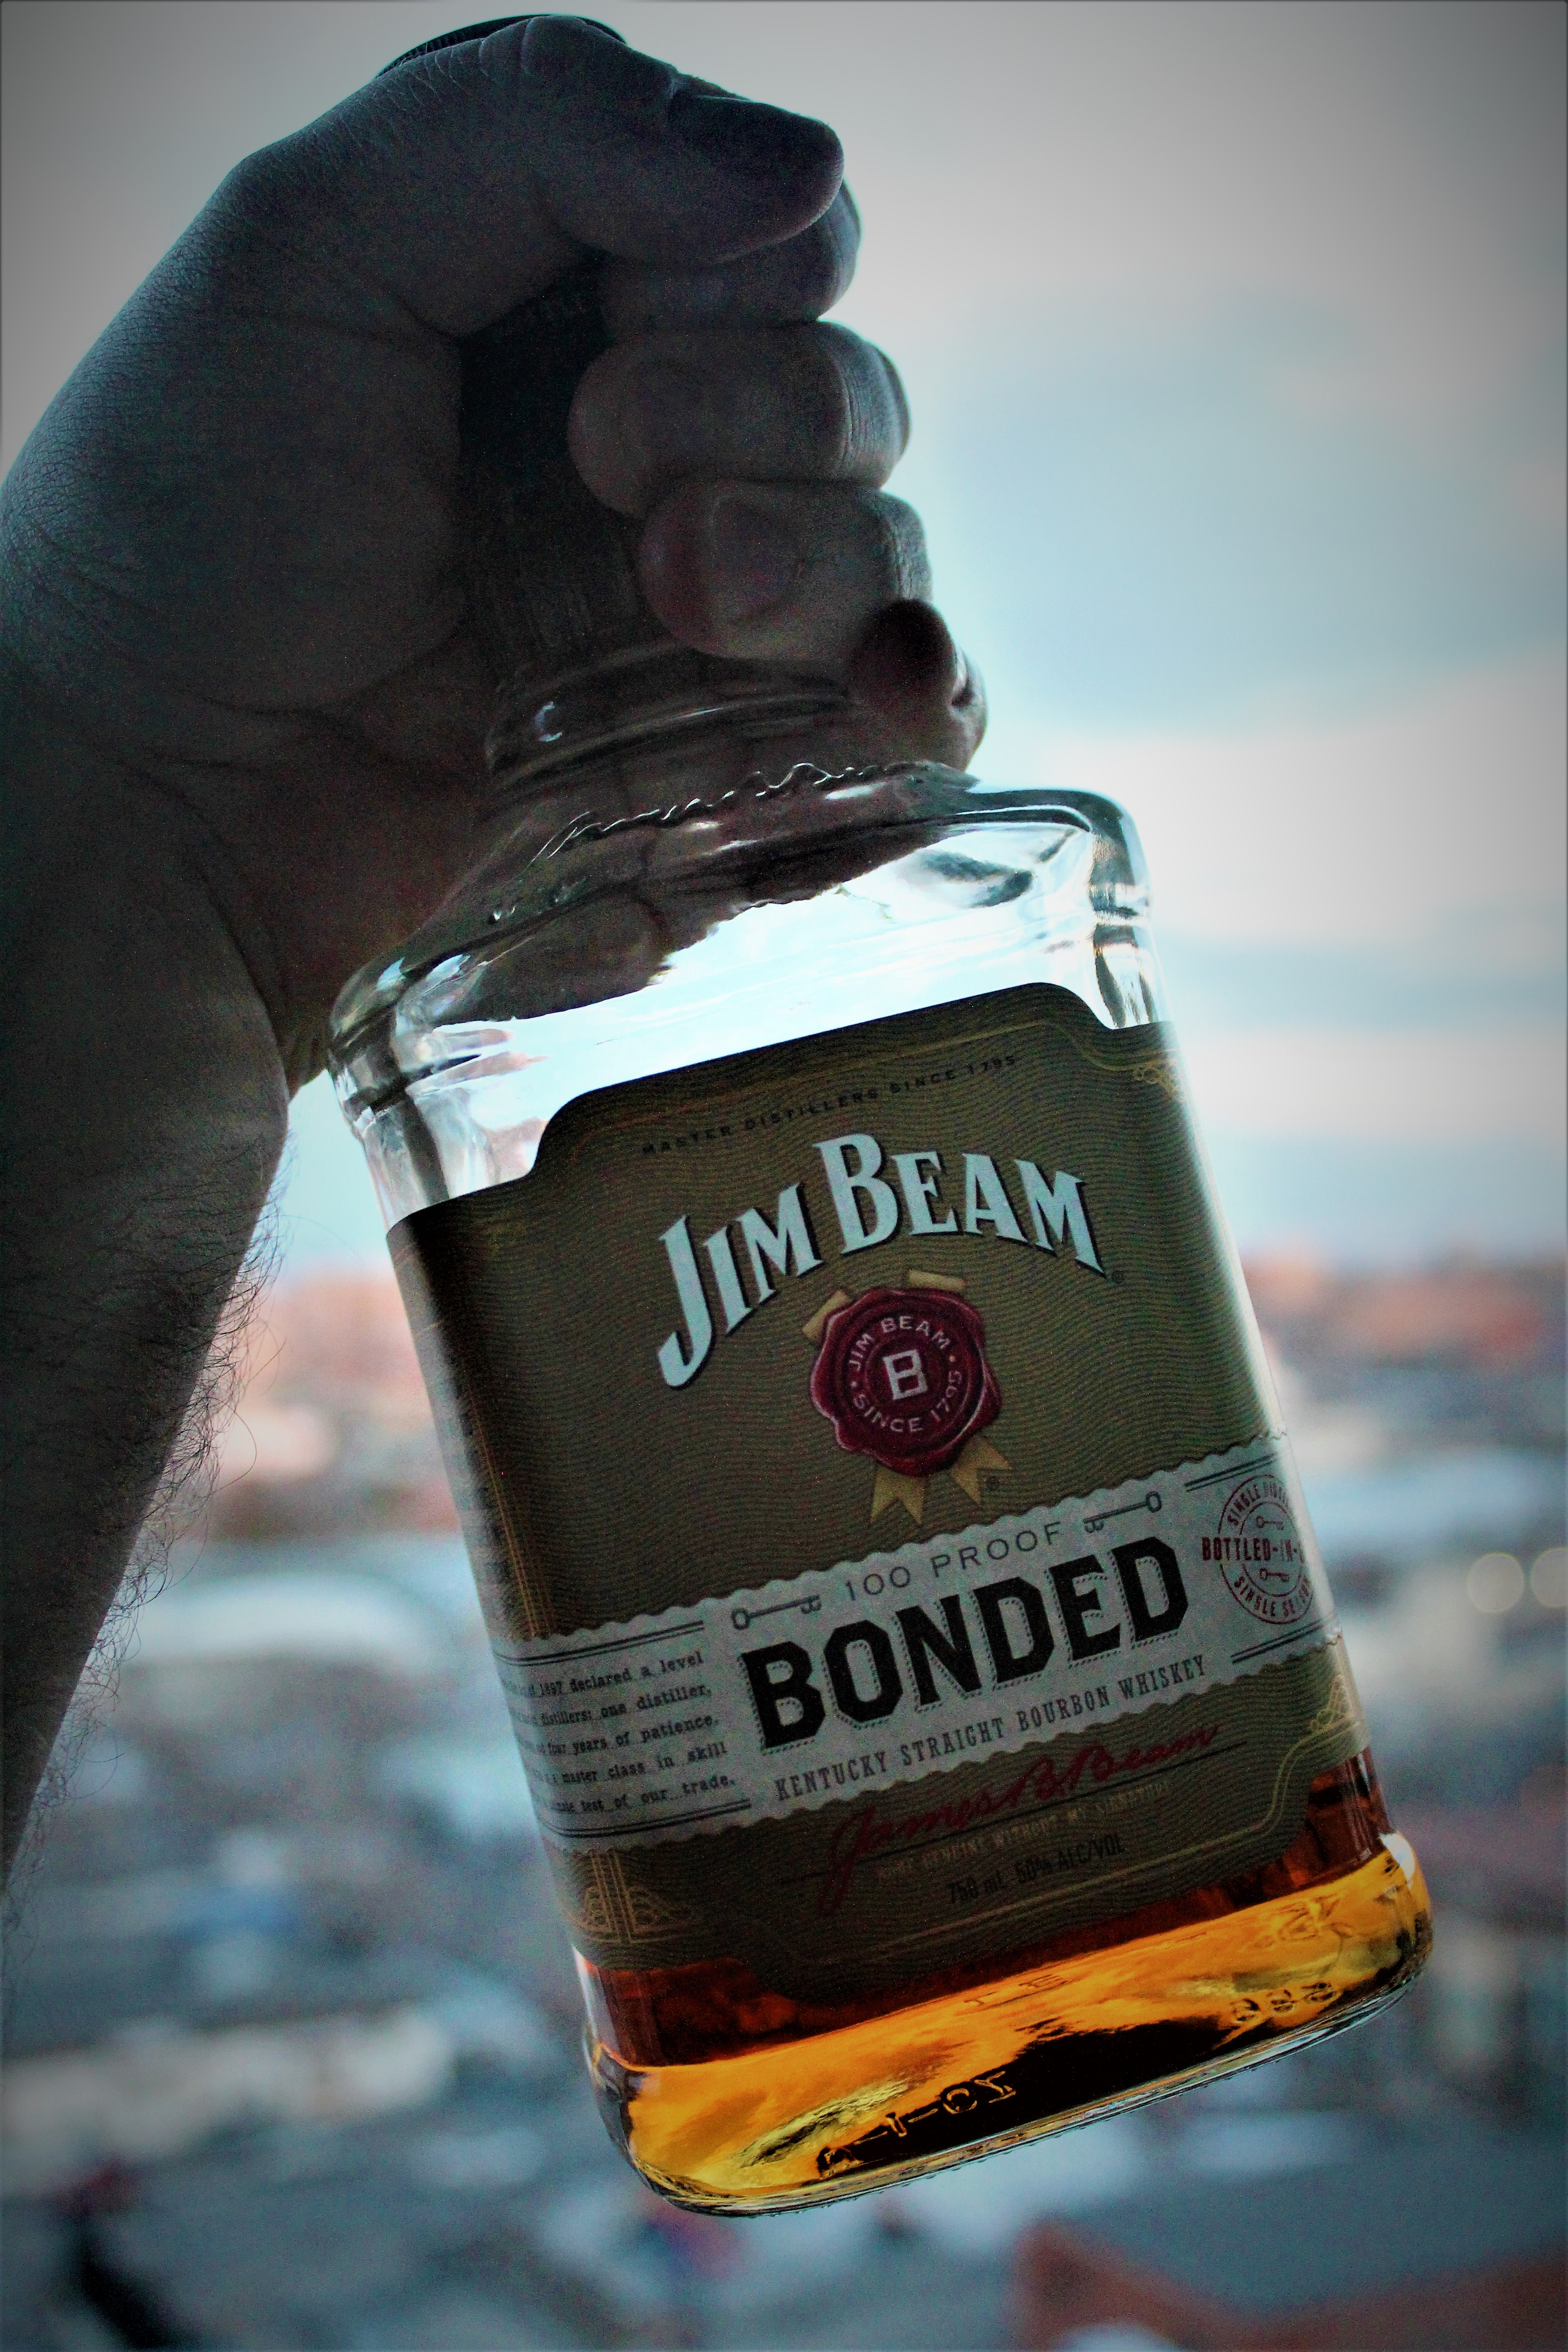 Jim Beam Bonded with Dan & Julia